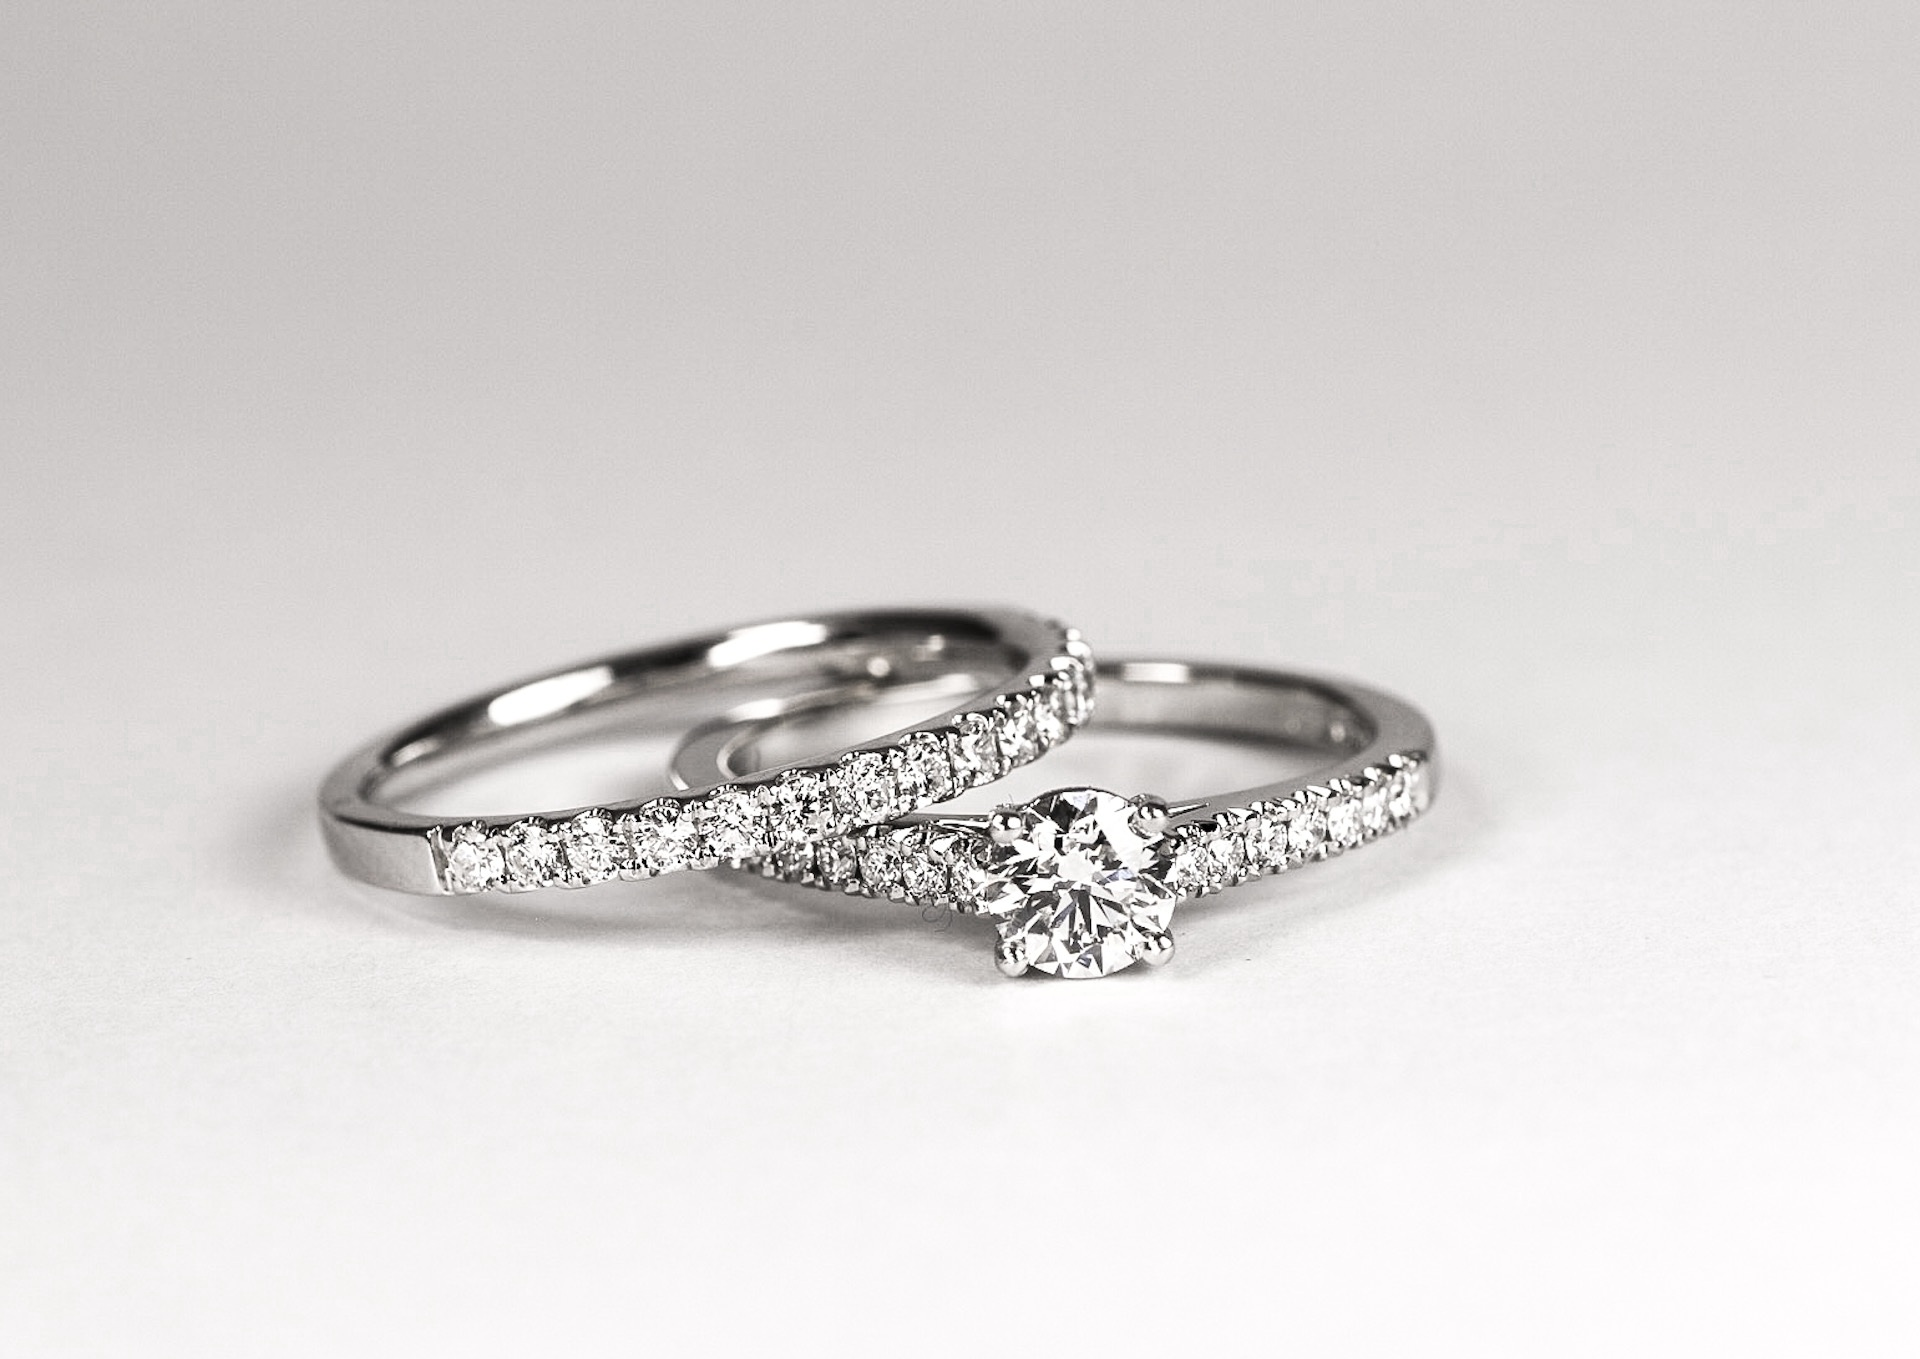 Platinum mounted solitaire with cut-away diamond set shoulders and matching band ring. Made in Chichester, England.